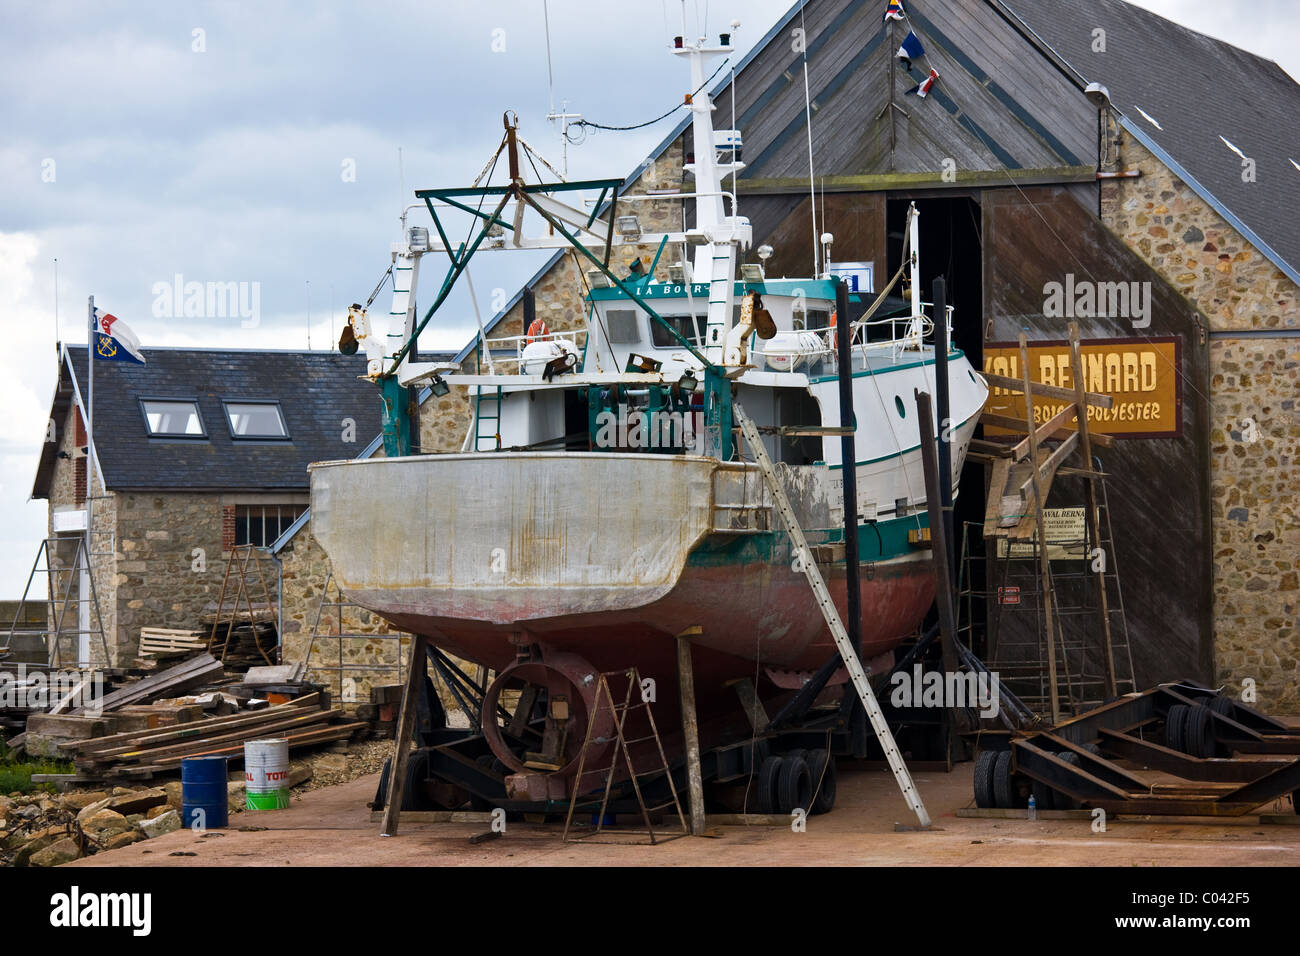 Boatyard at Channel port of St Vaast La Hougue in Normandy, France - Stock Image